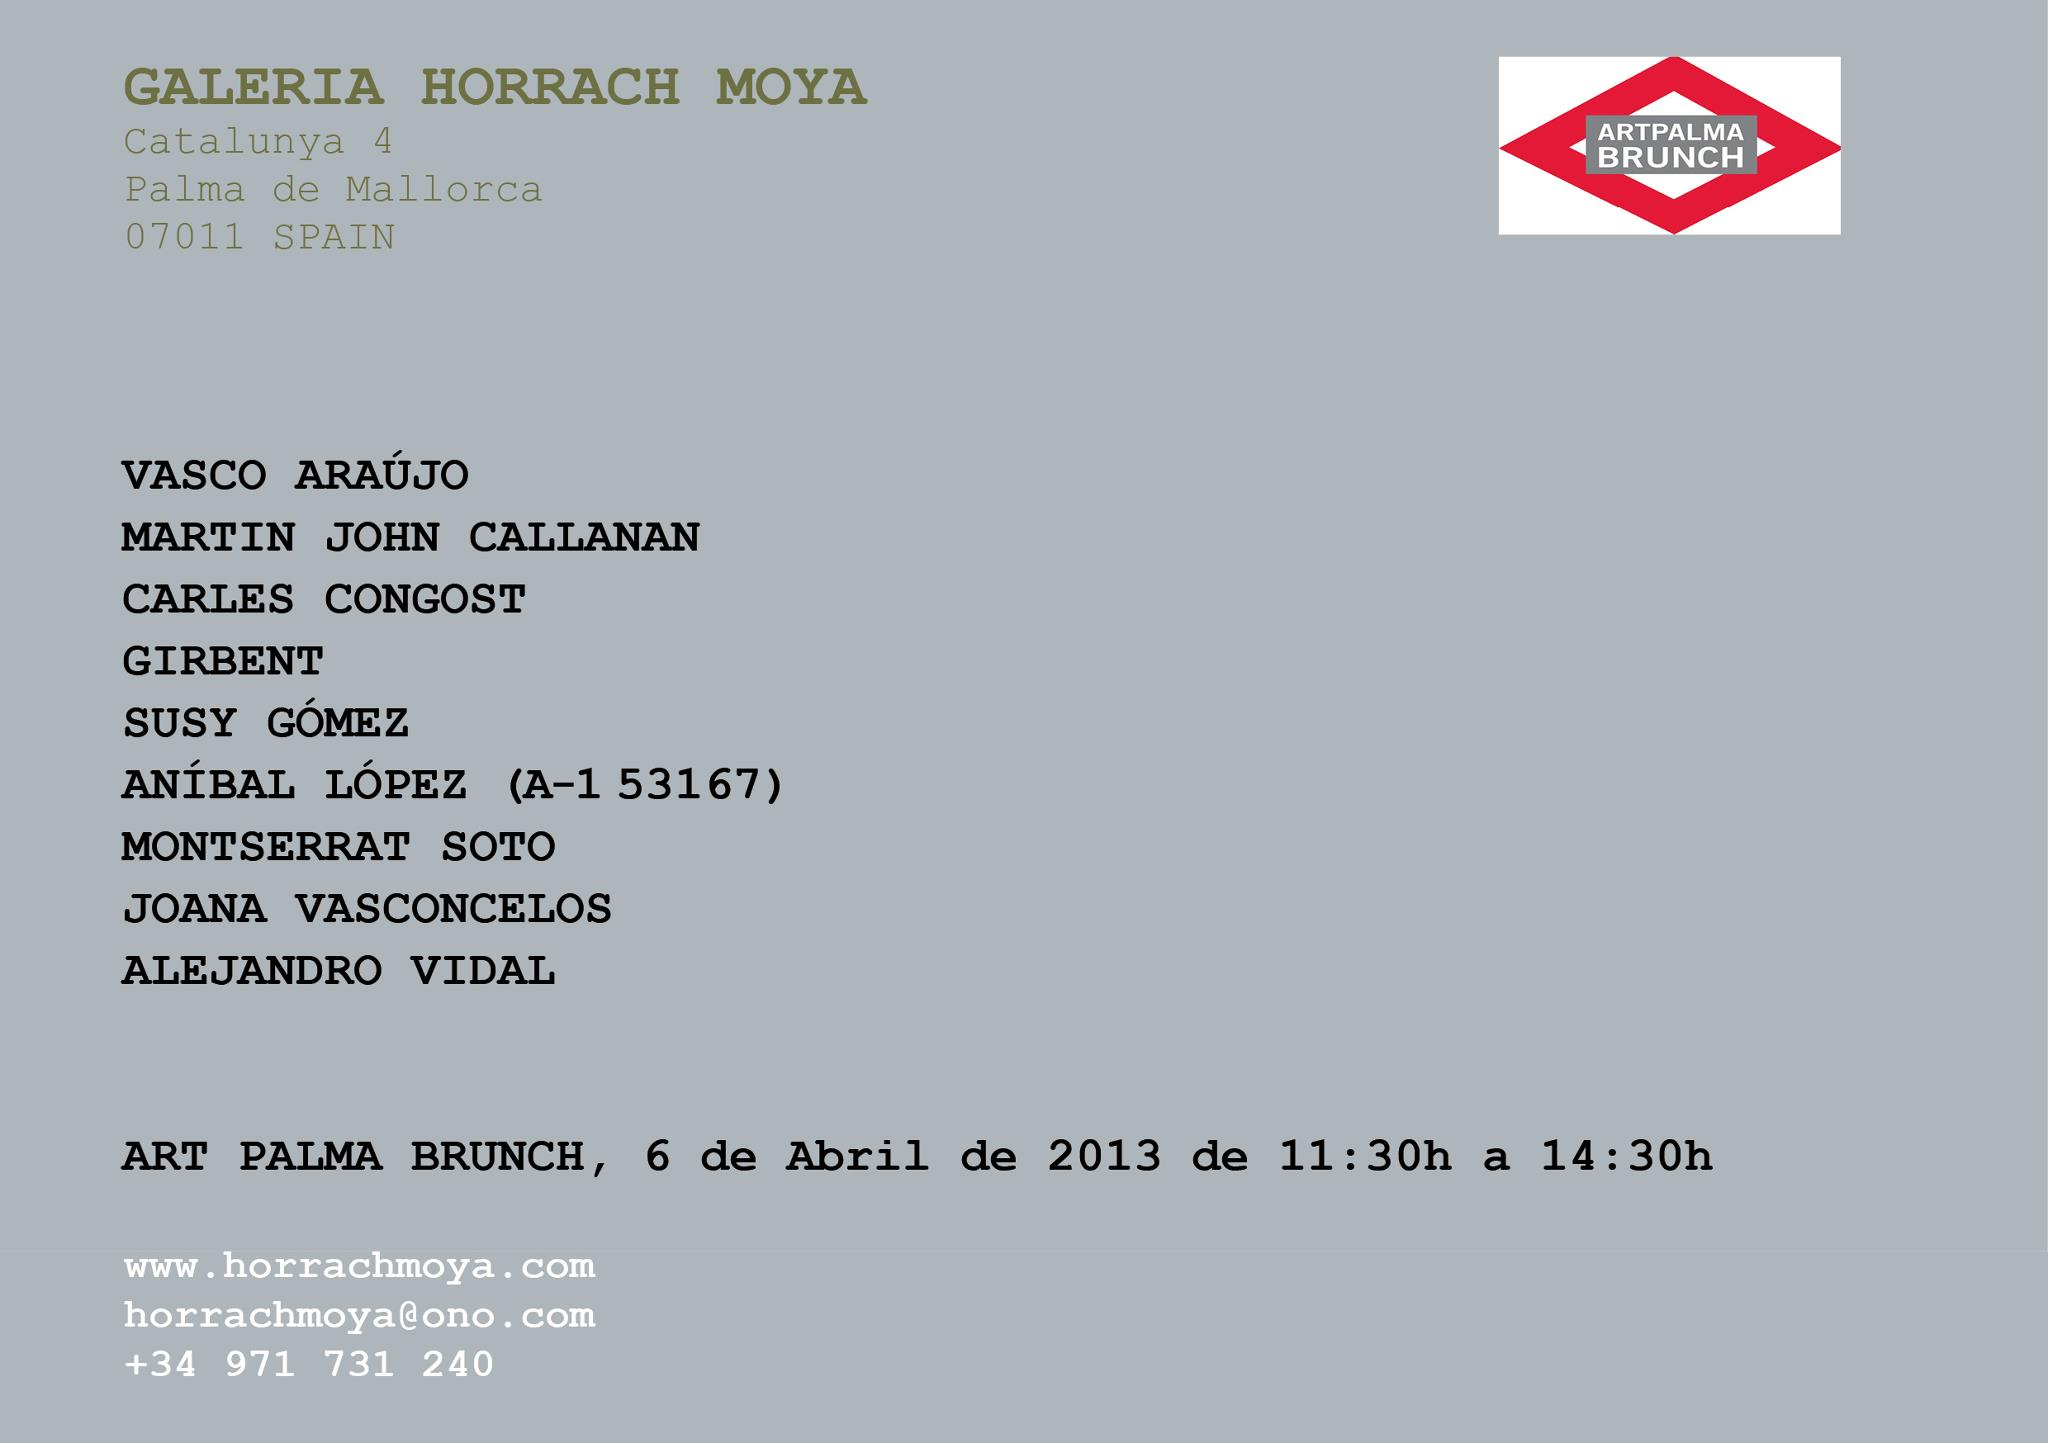 horrach moya art brunch palma